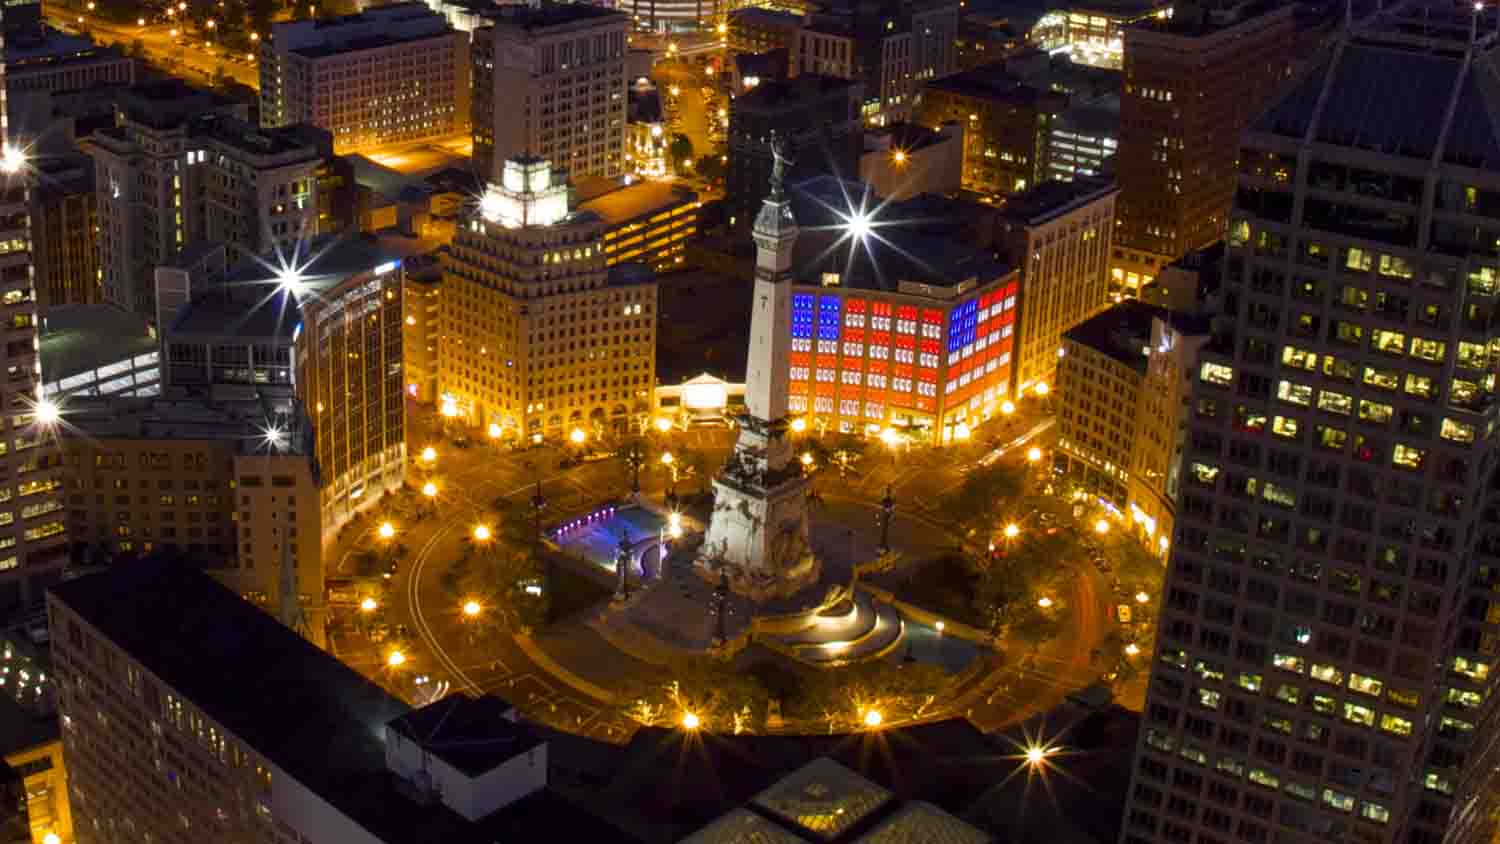 Soldier and sailors monument 4